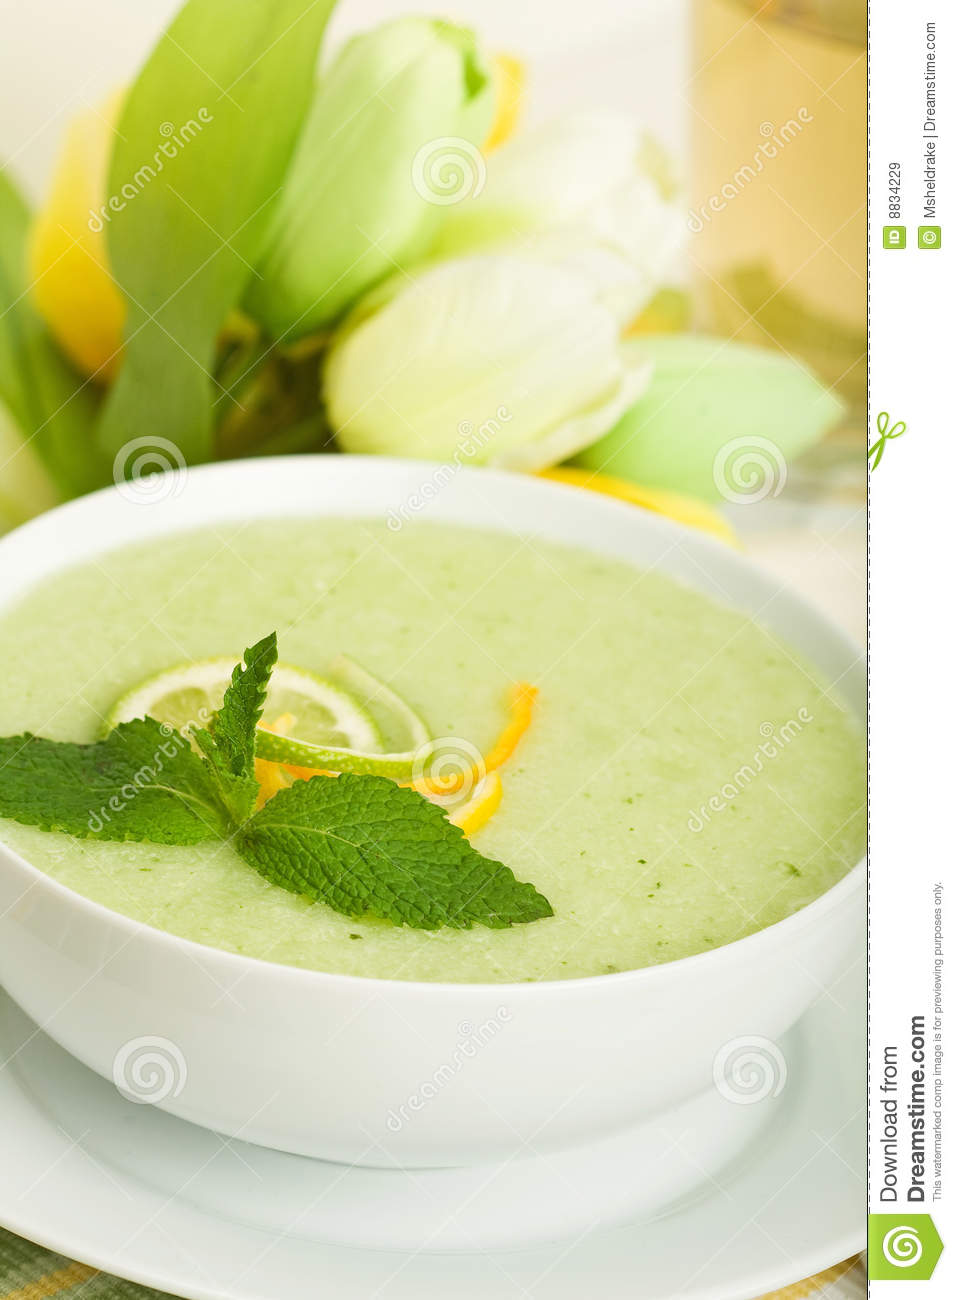 Cool Melon Soup Royalty Free Stock Images - Image: 8834229